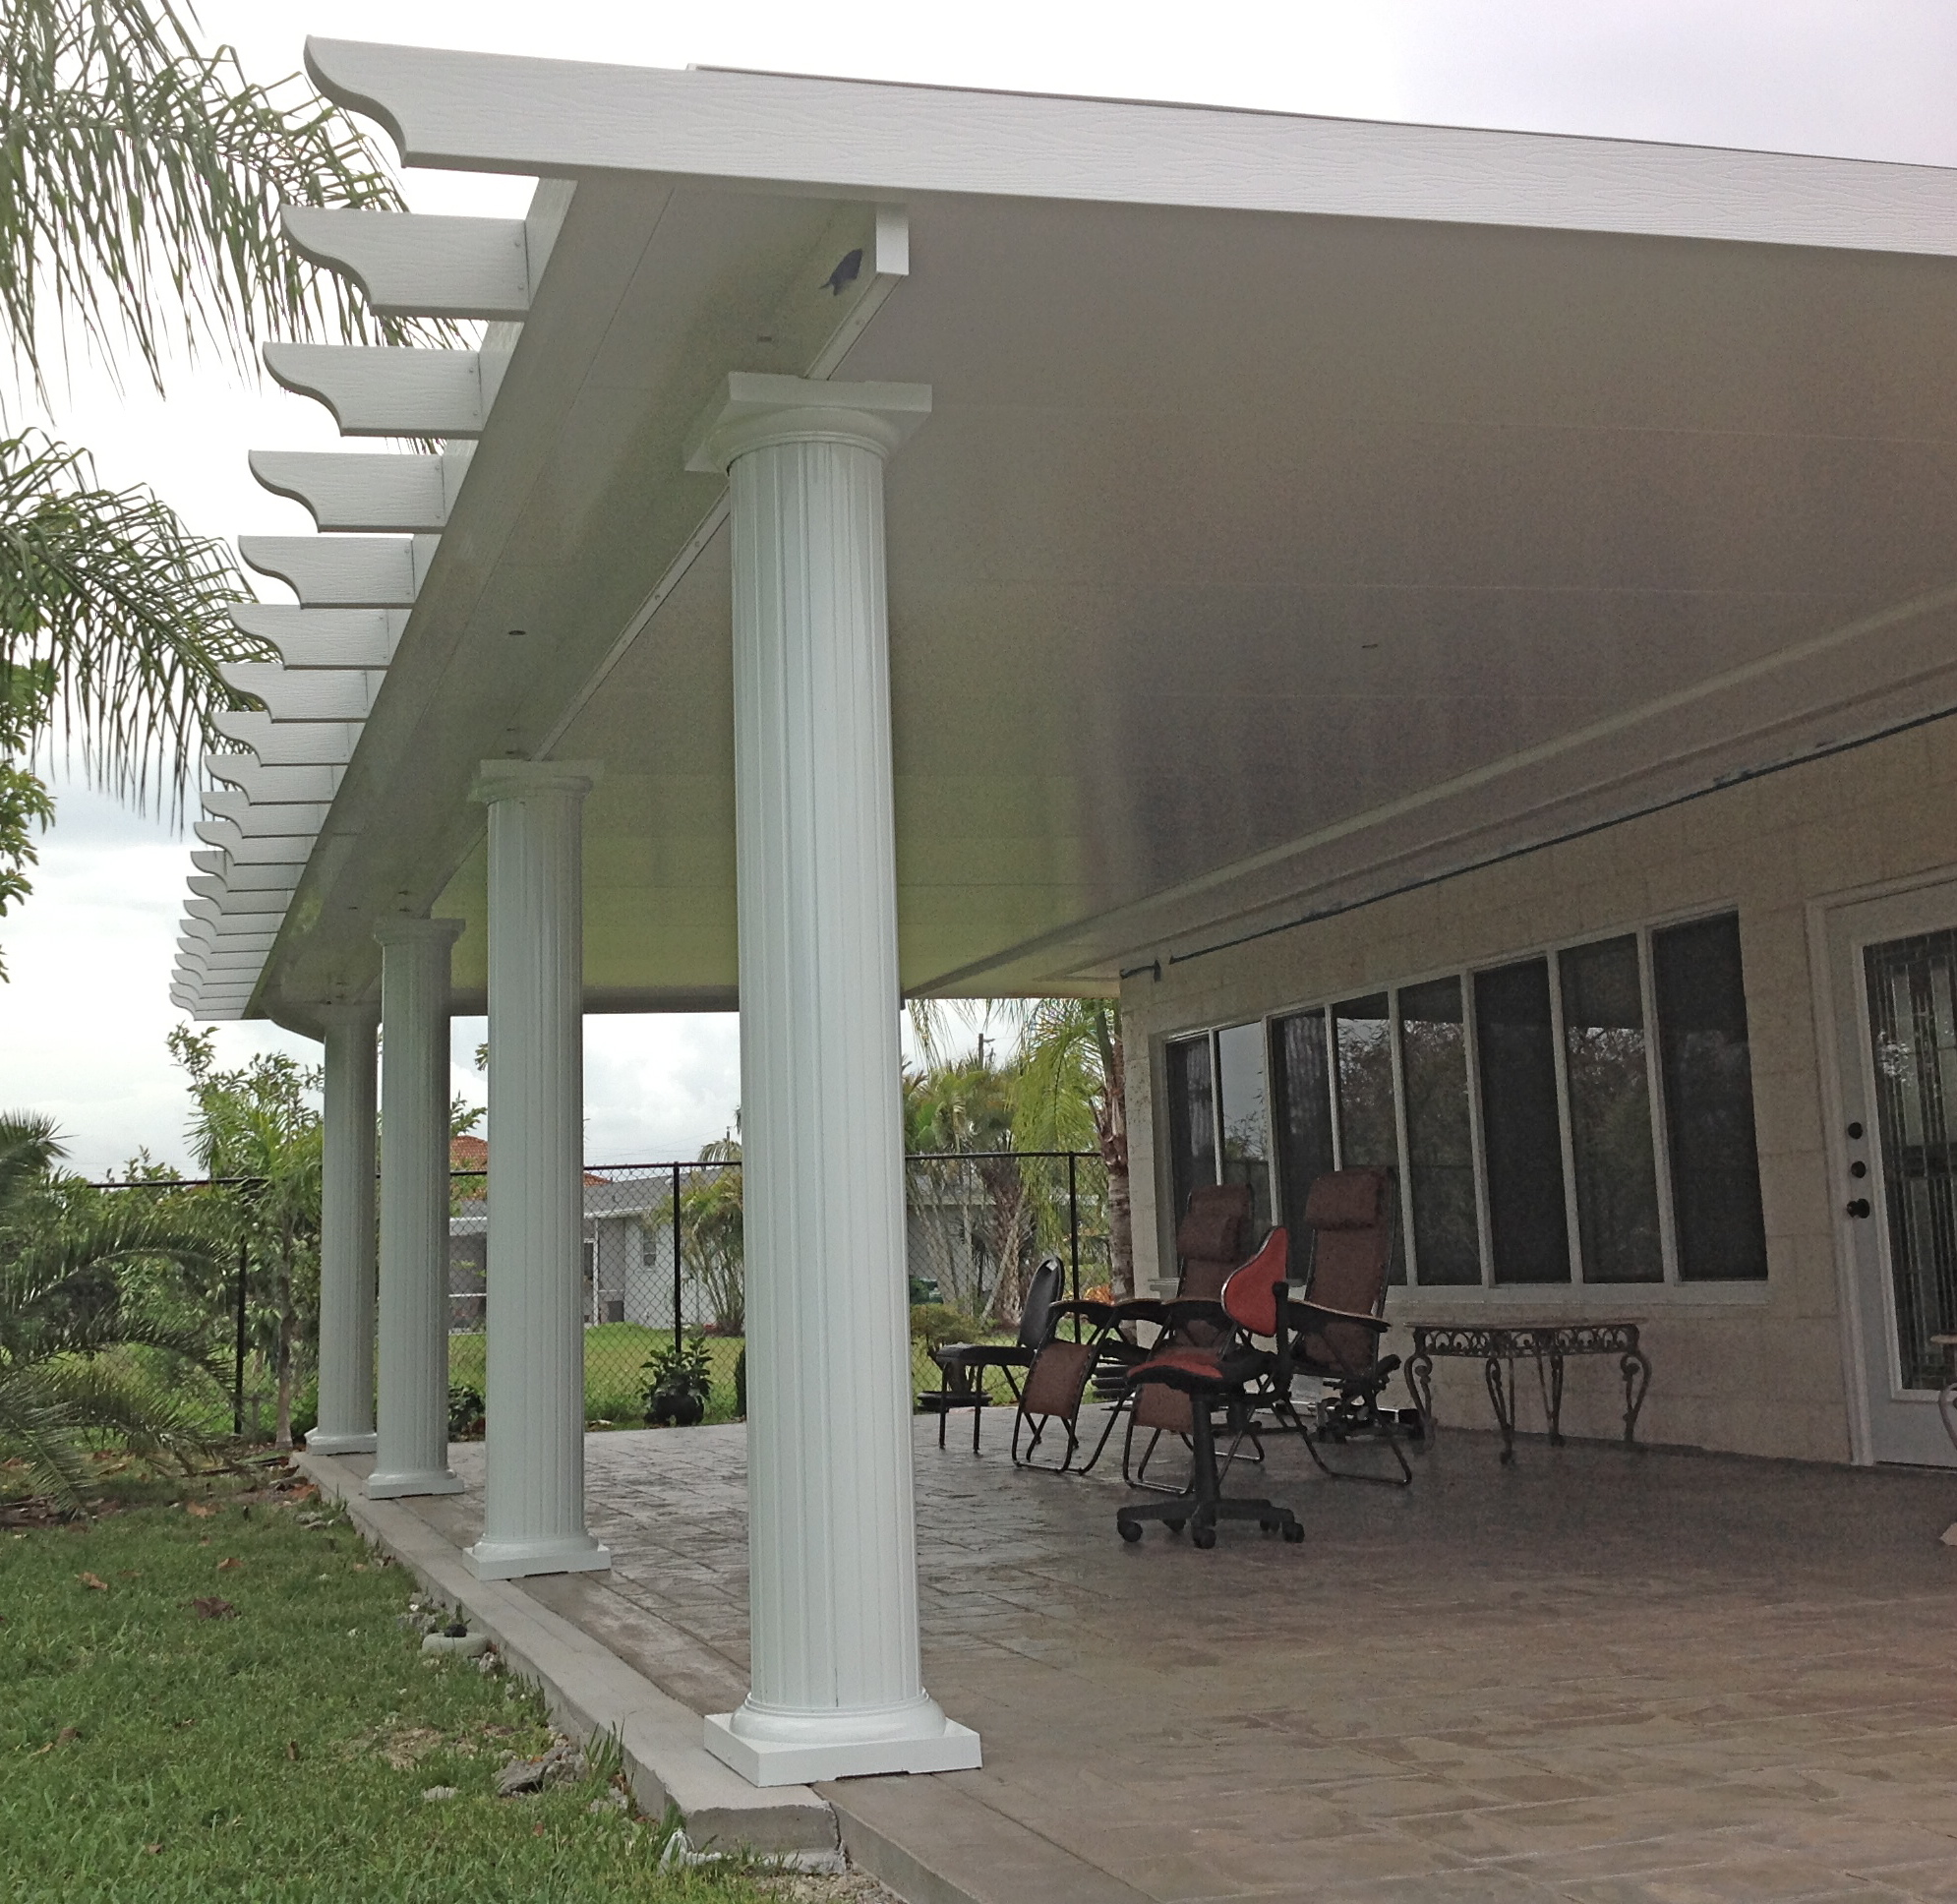 Insulated Patio Roofs In South Florida Feed Sales Increase For Venetian Builders Inc During